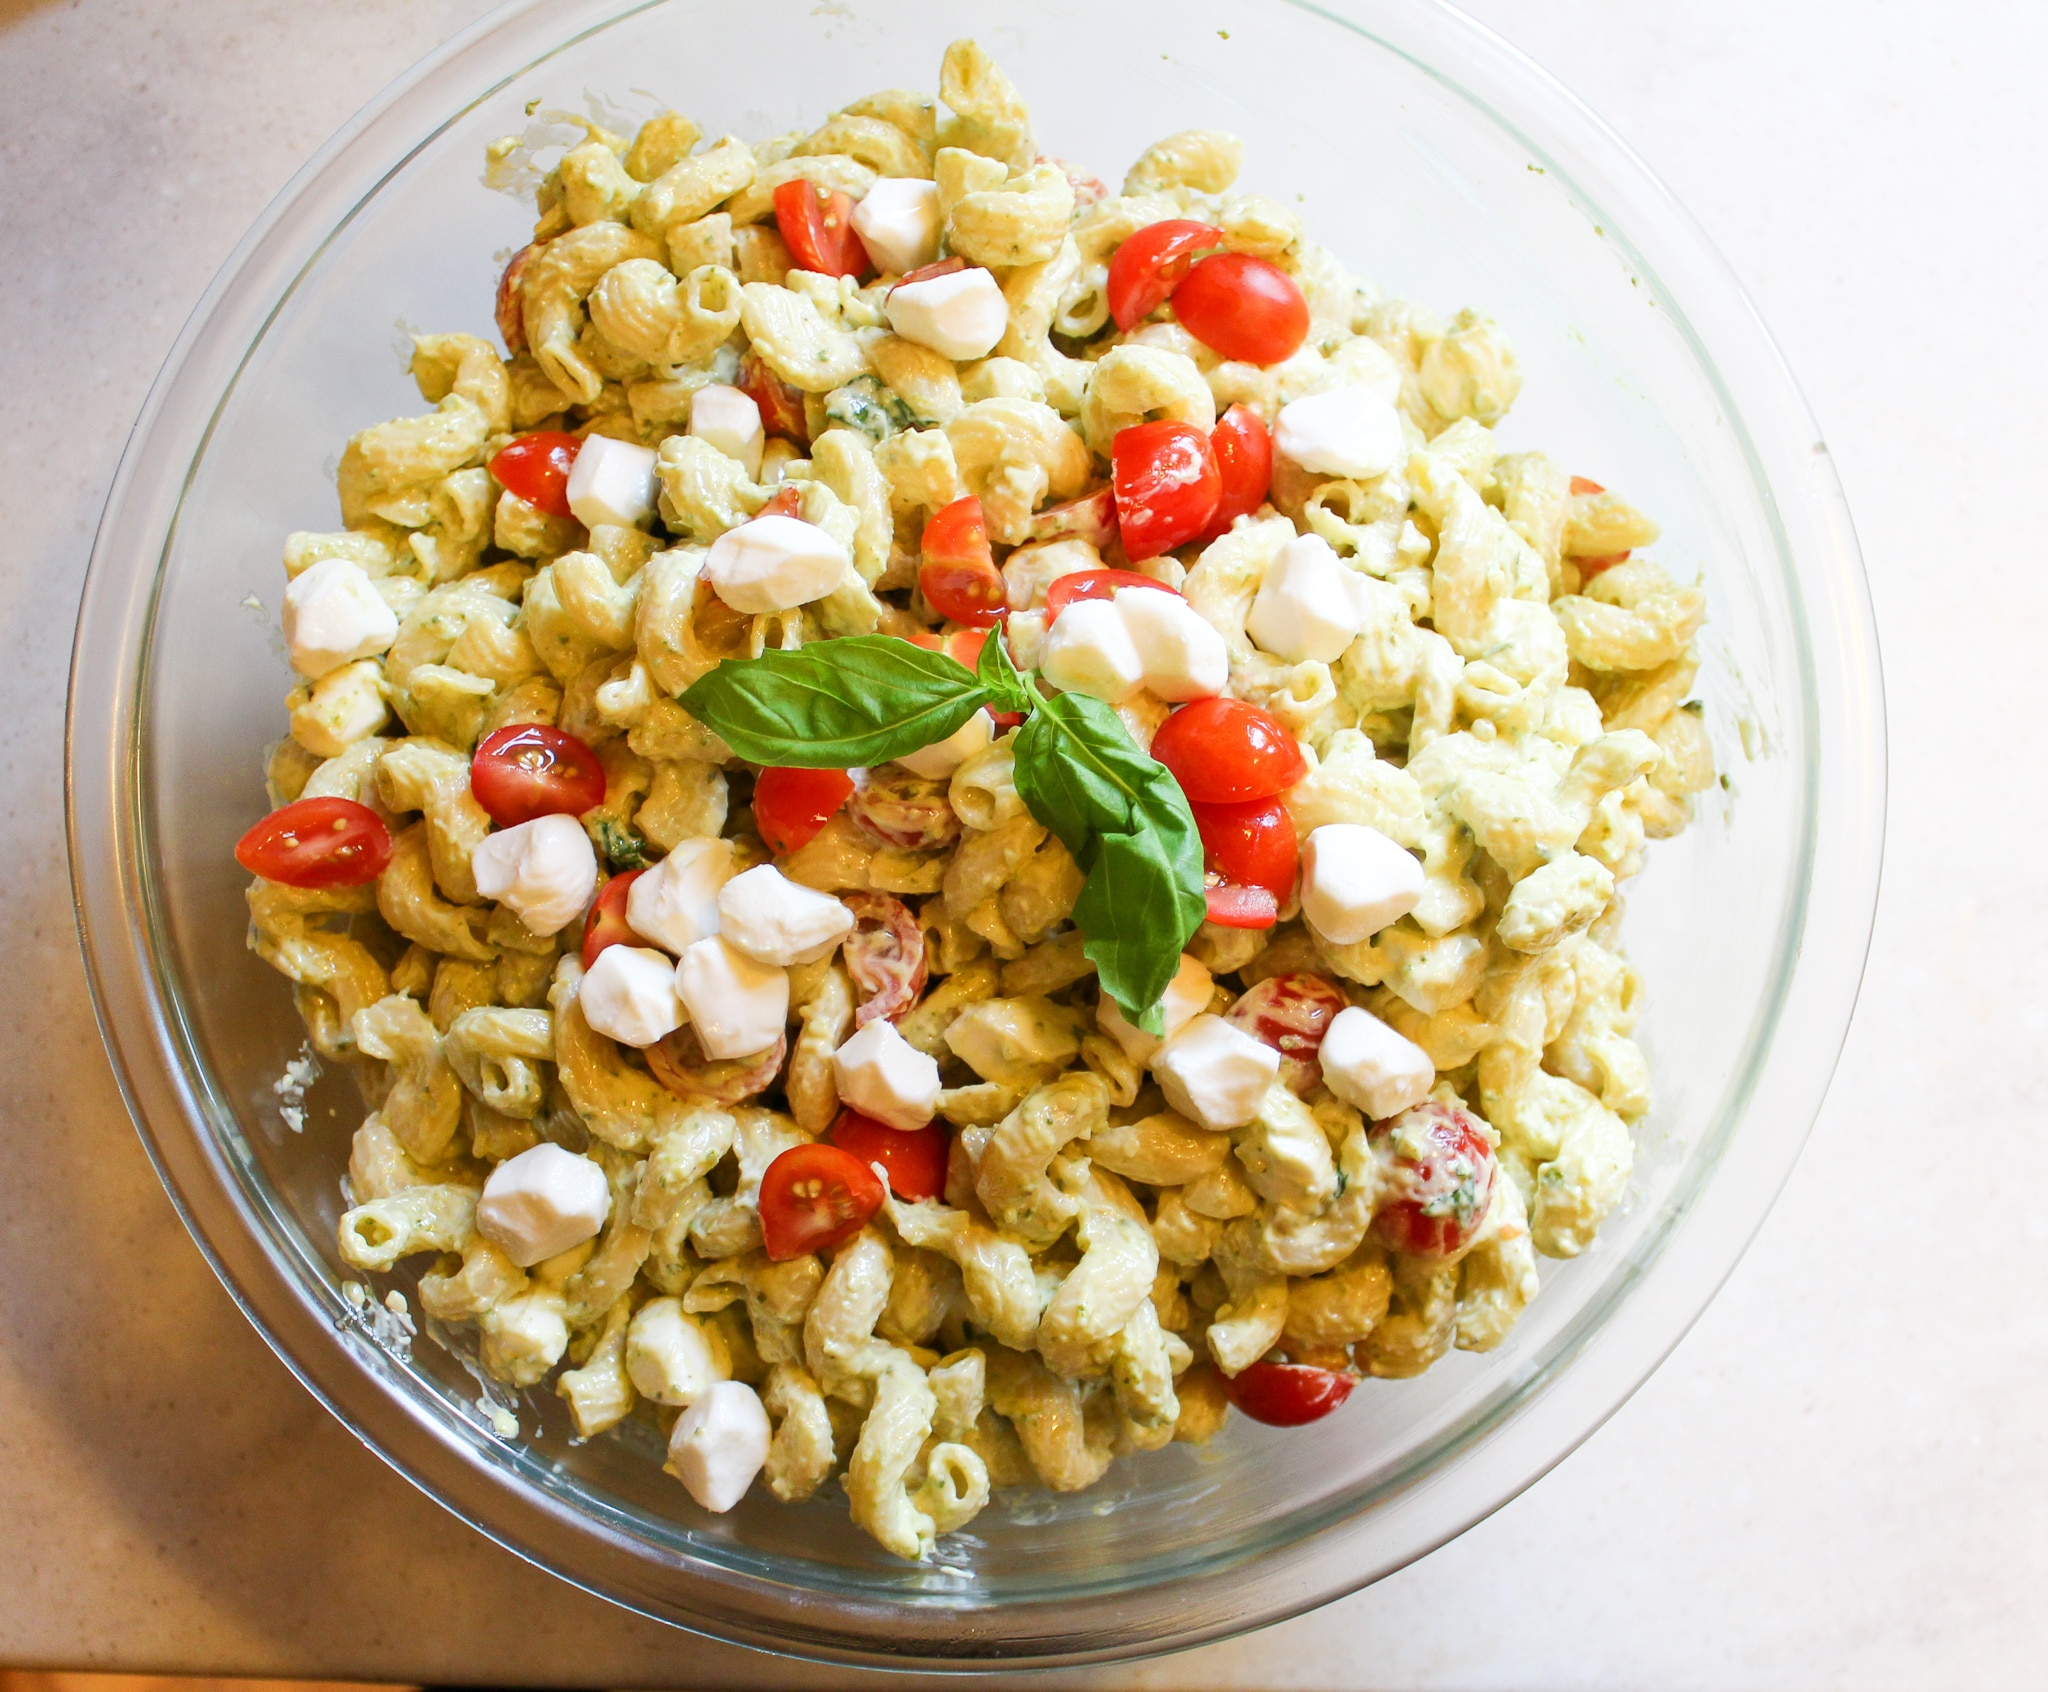 bowl of plain noodles with mayo, pesto, cheese, tomatoes, and basil mixed together with basil garnish